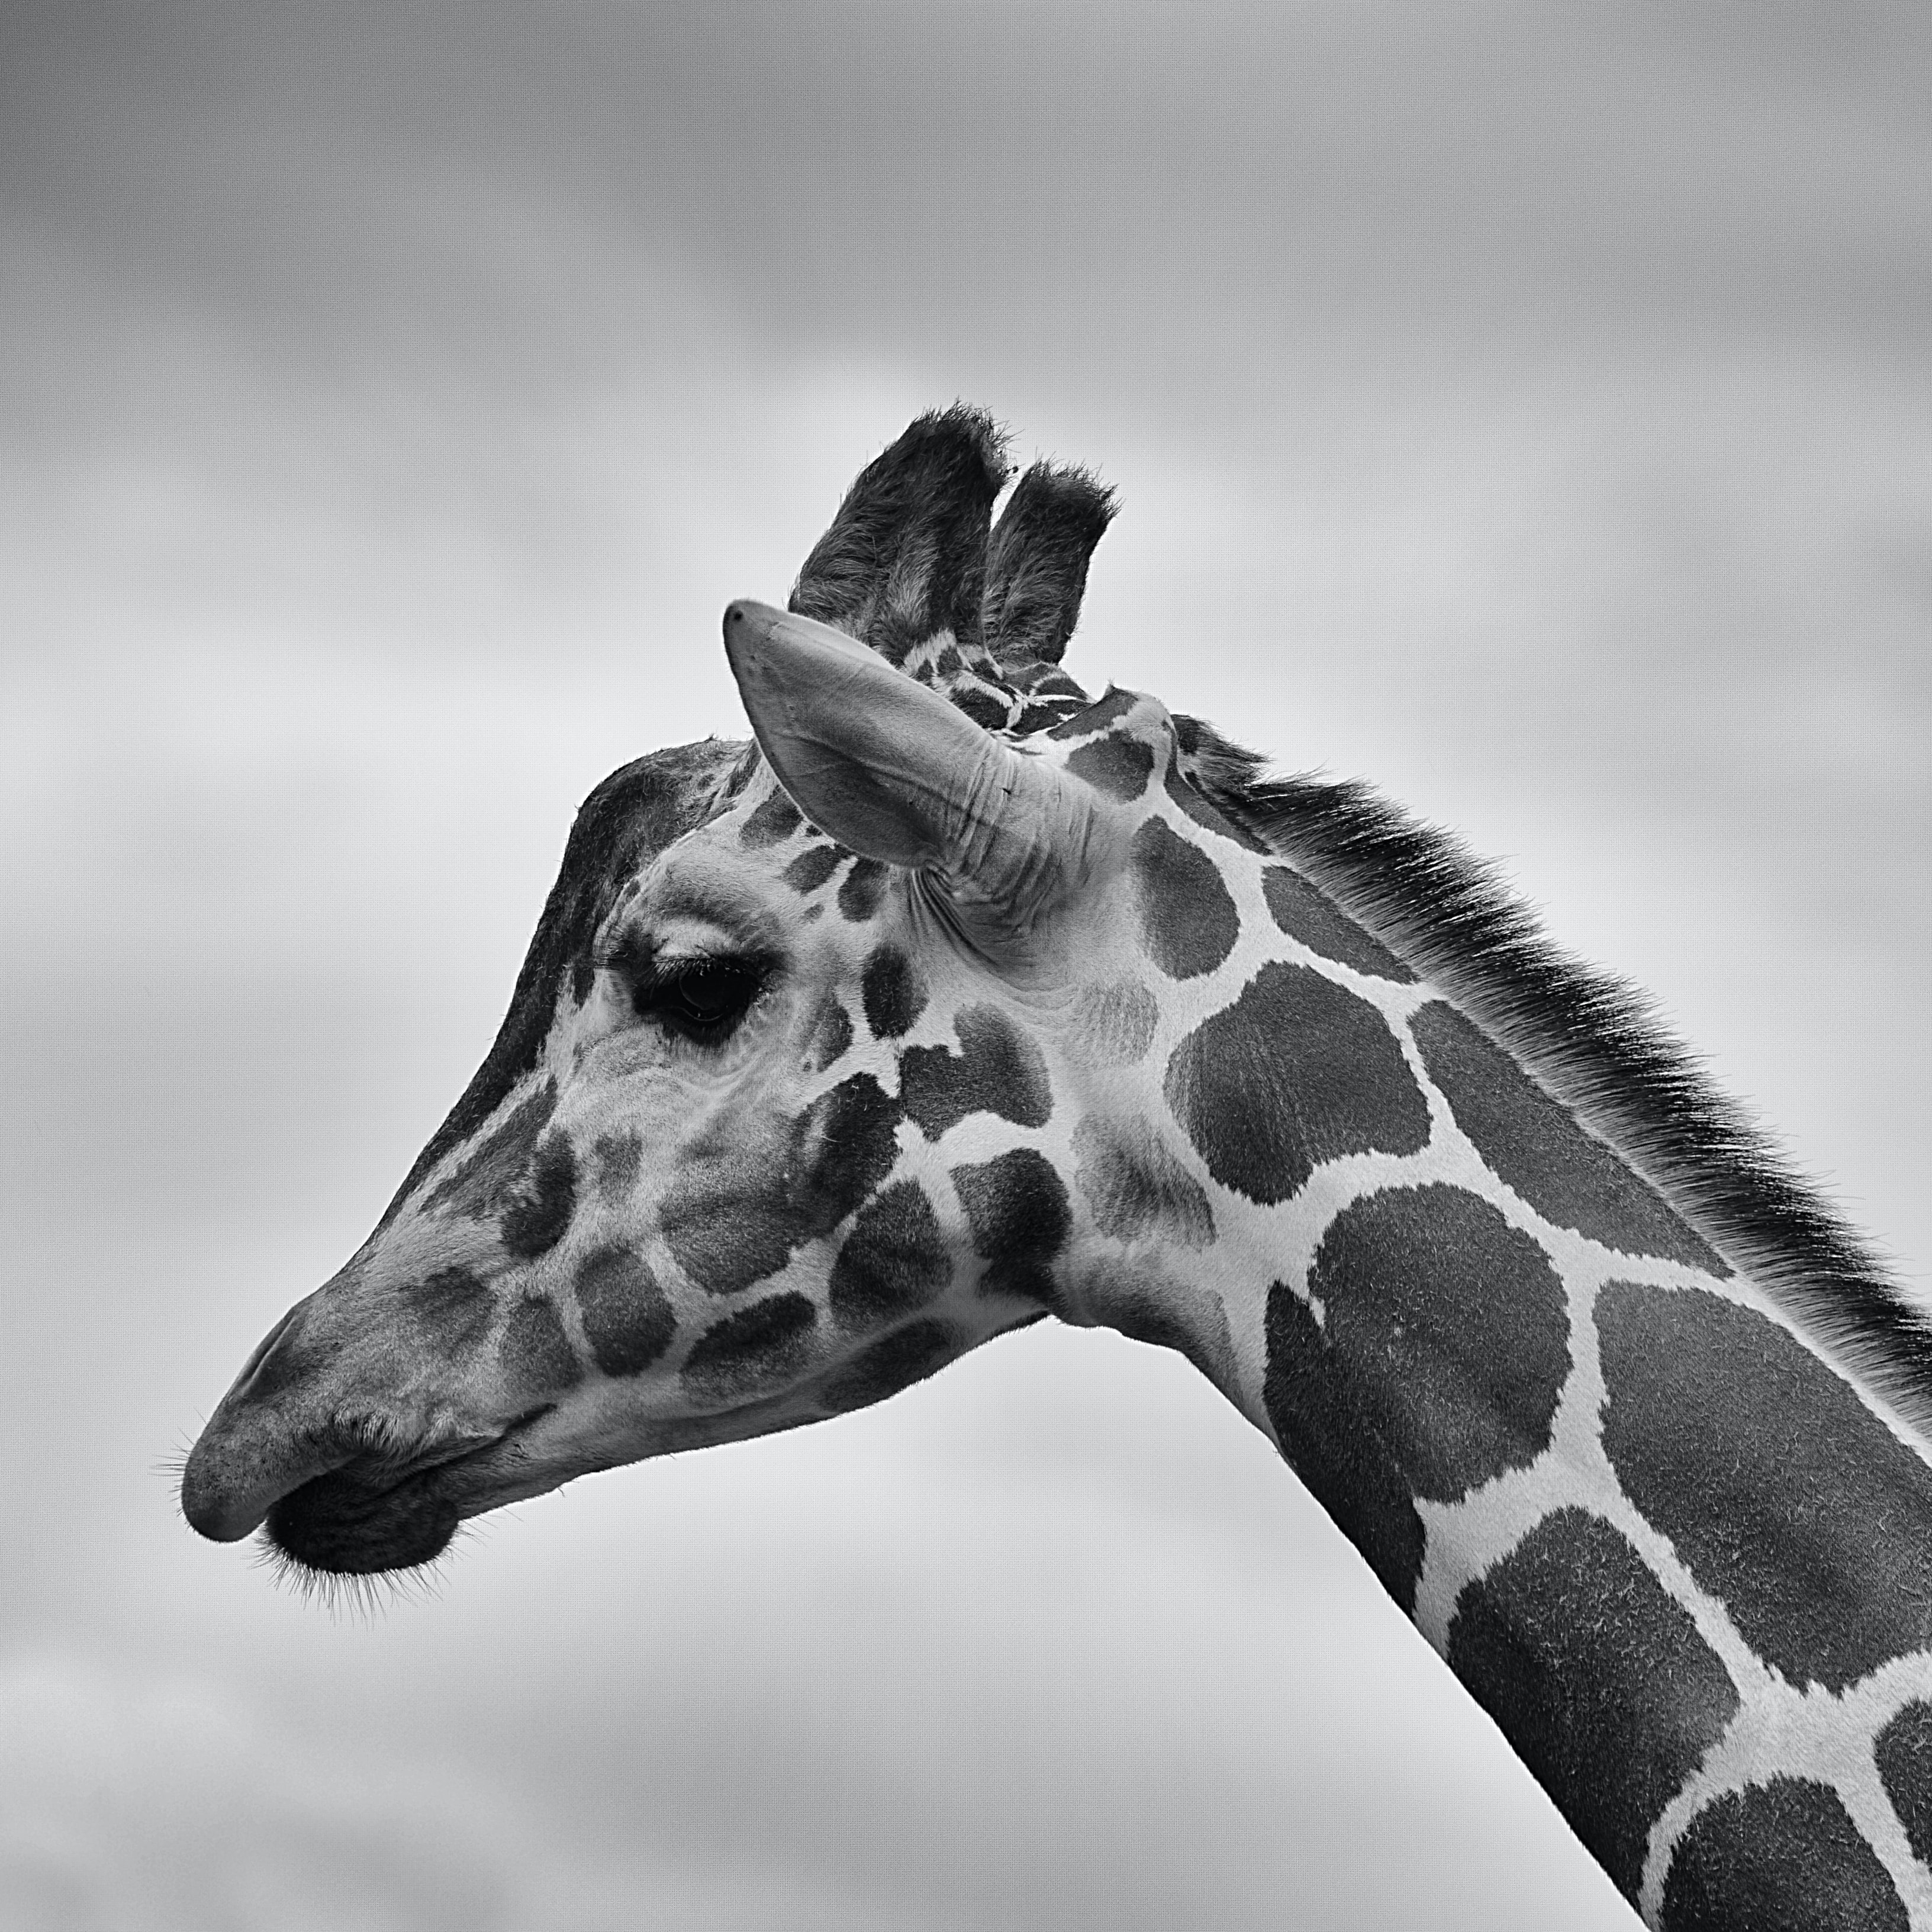 A thoughtful black-and-white photo of a giraffe's head